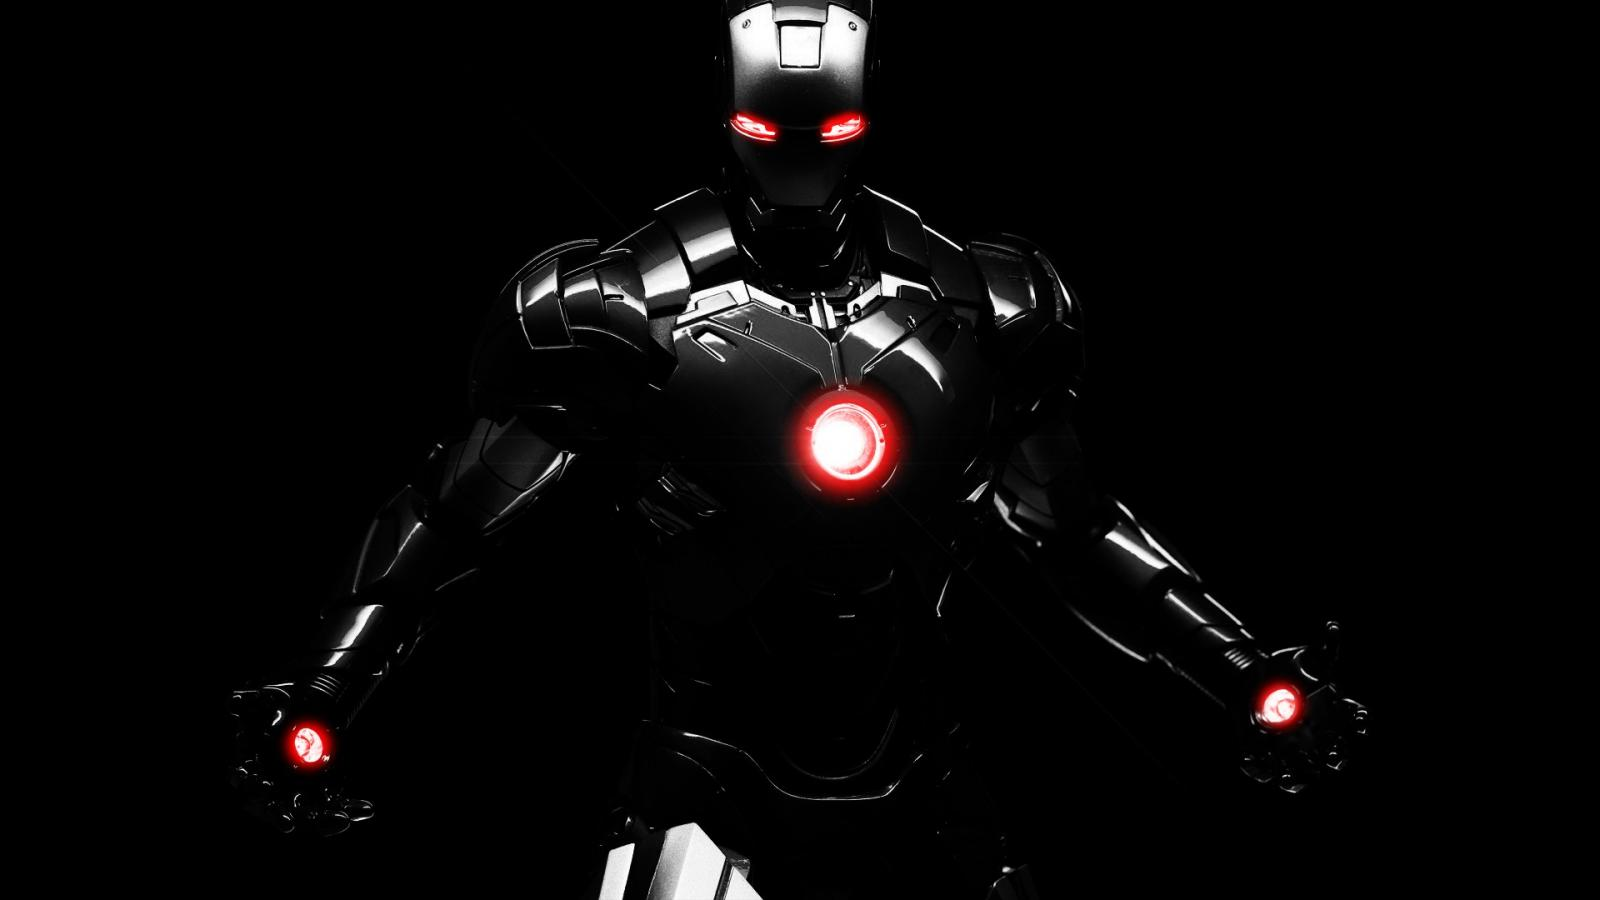 Desktop Wallpaper High Definition Hd In 1080p With Iron Man Photos